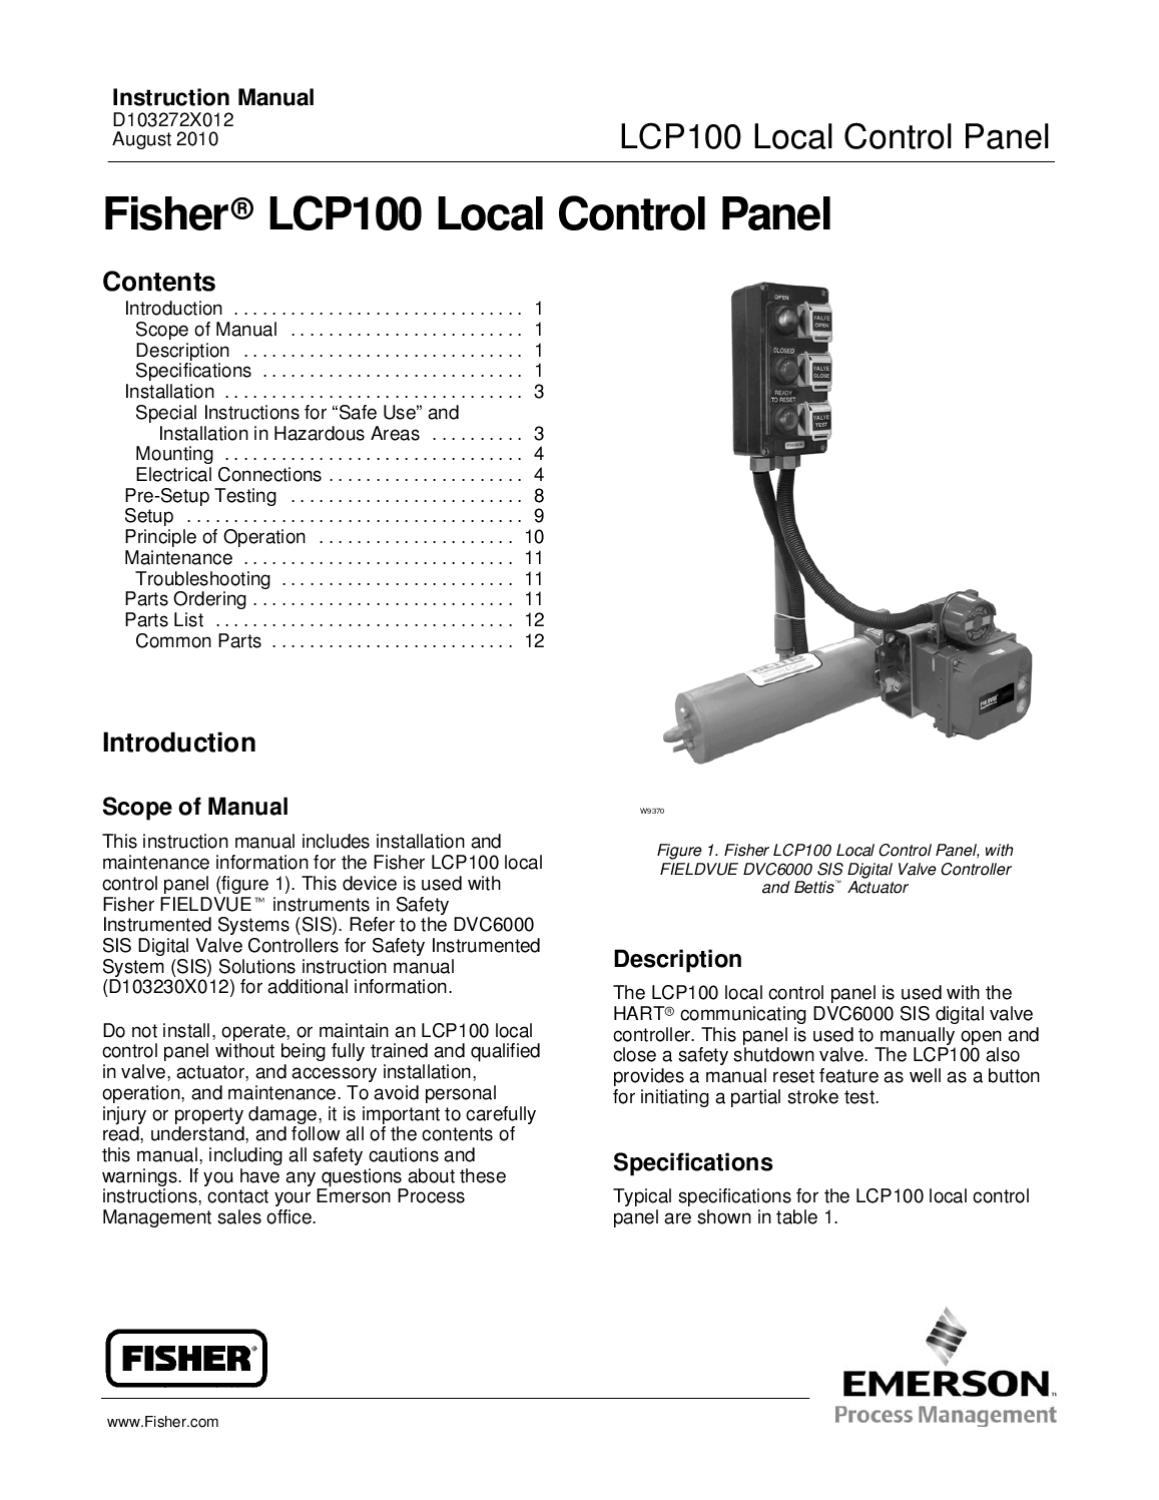 LCP100 Control Panel Instruction Manual Aug 2010 by RMC Process ...